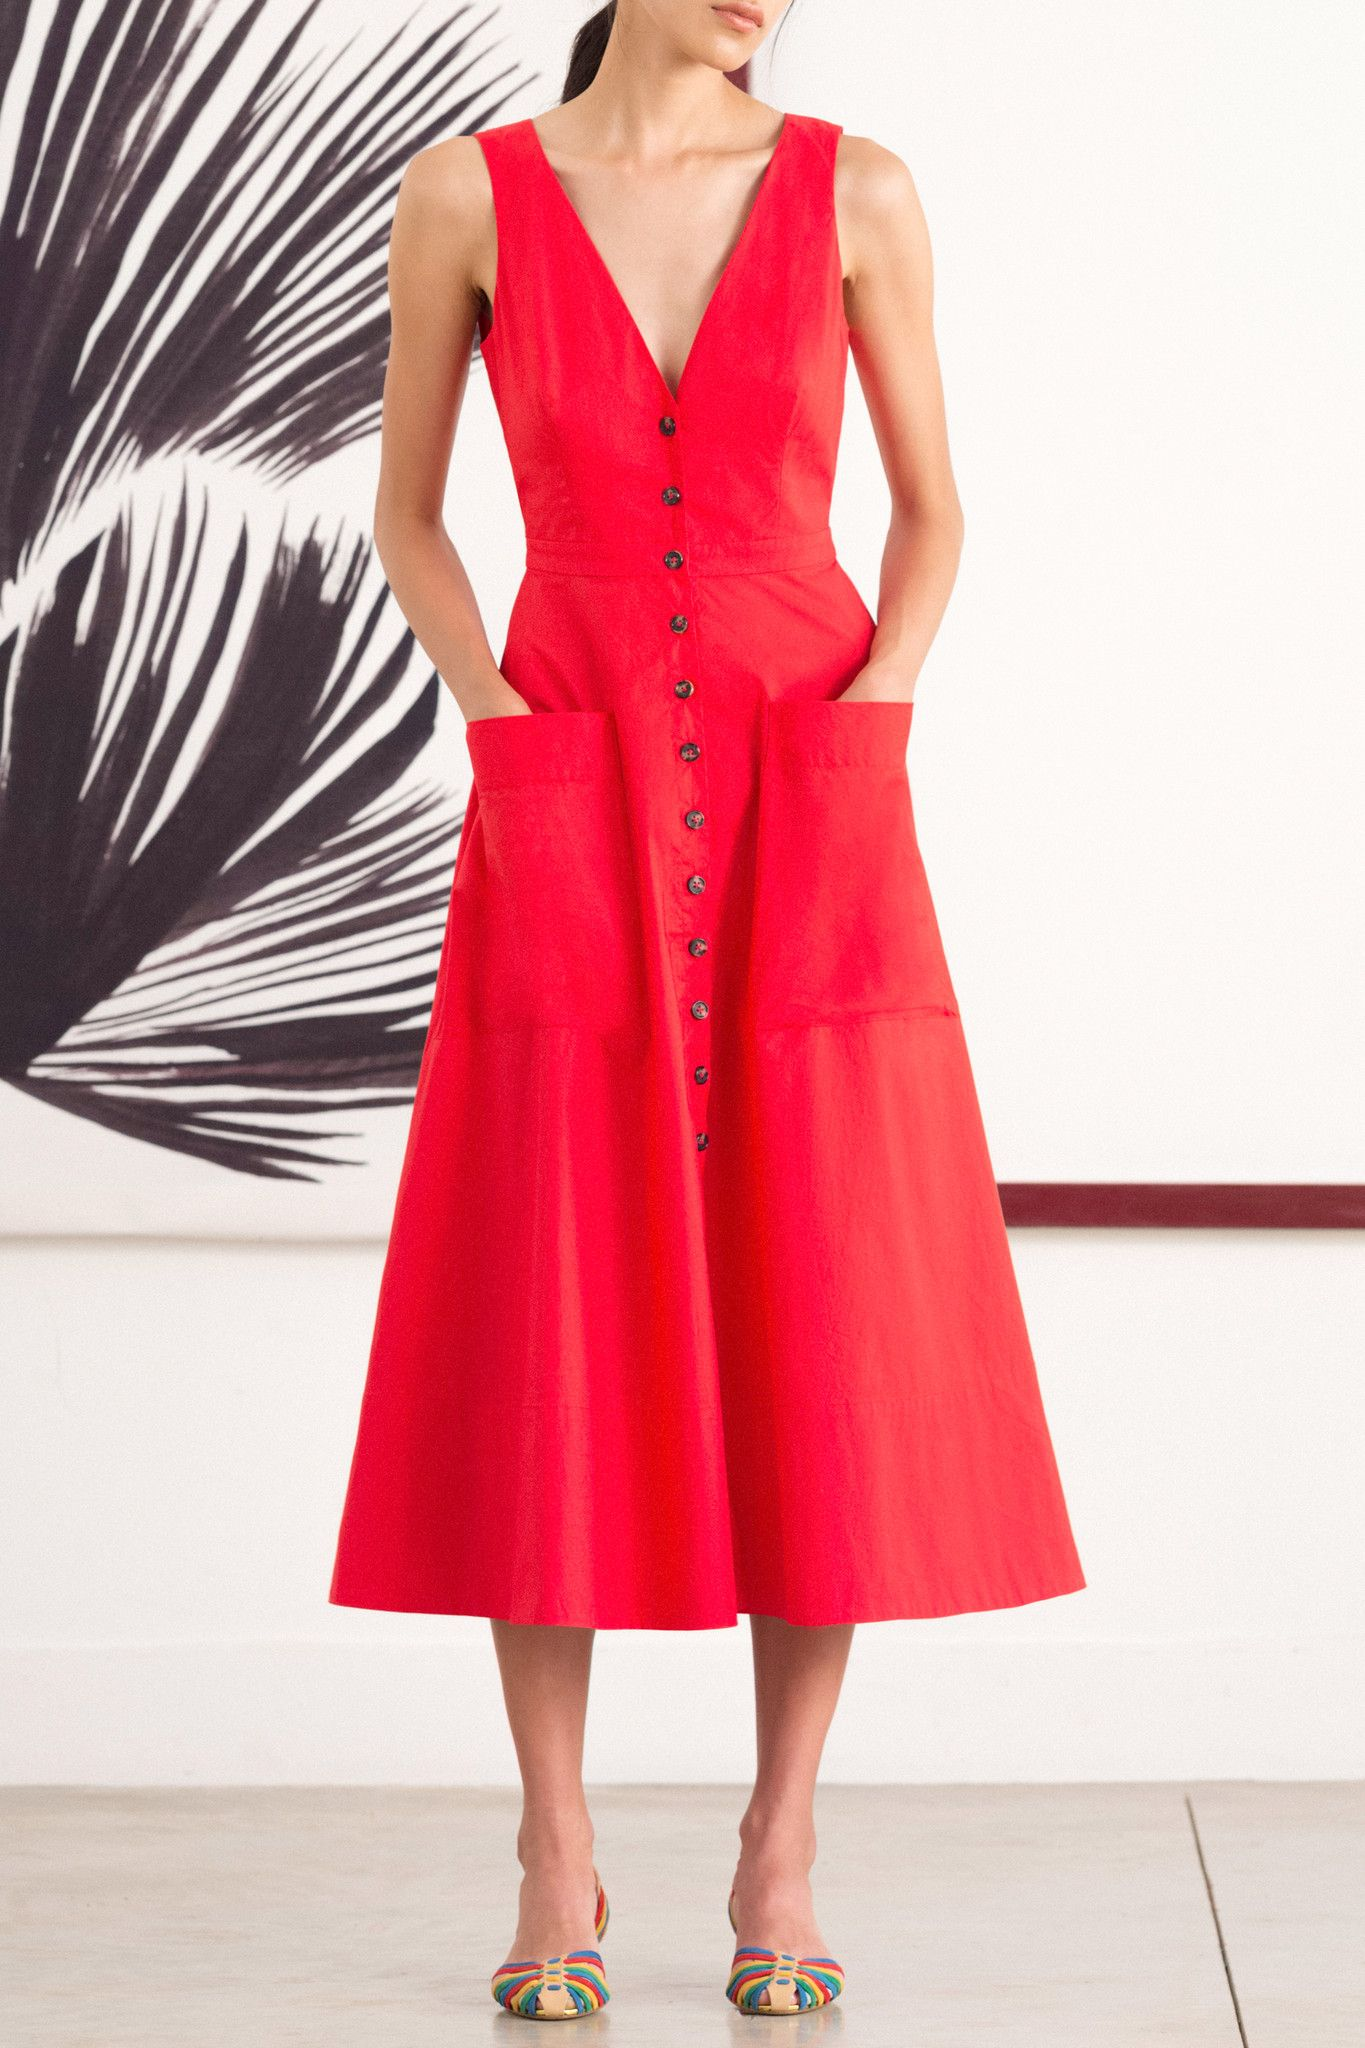 saloni ZOEY CHERRY RED COTTON DRESS from Saloni London | fashion ...